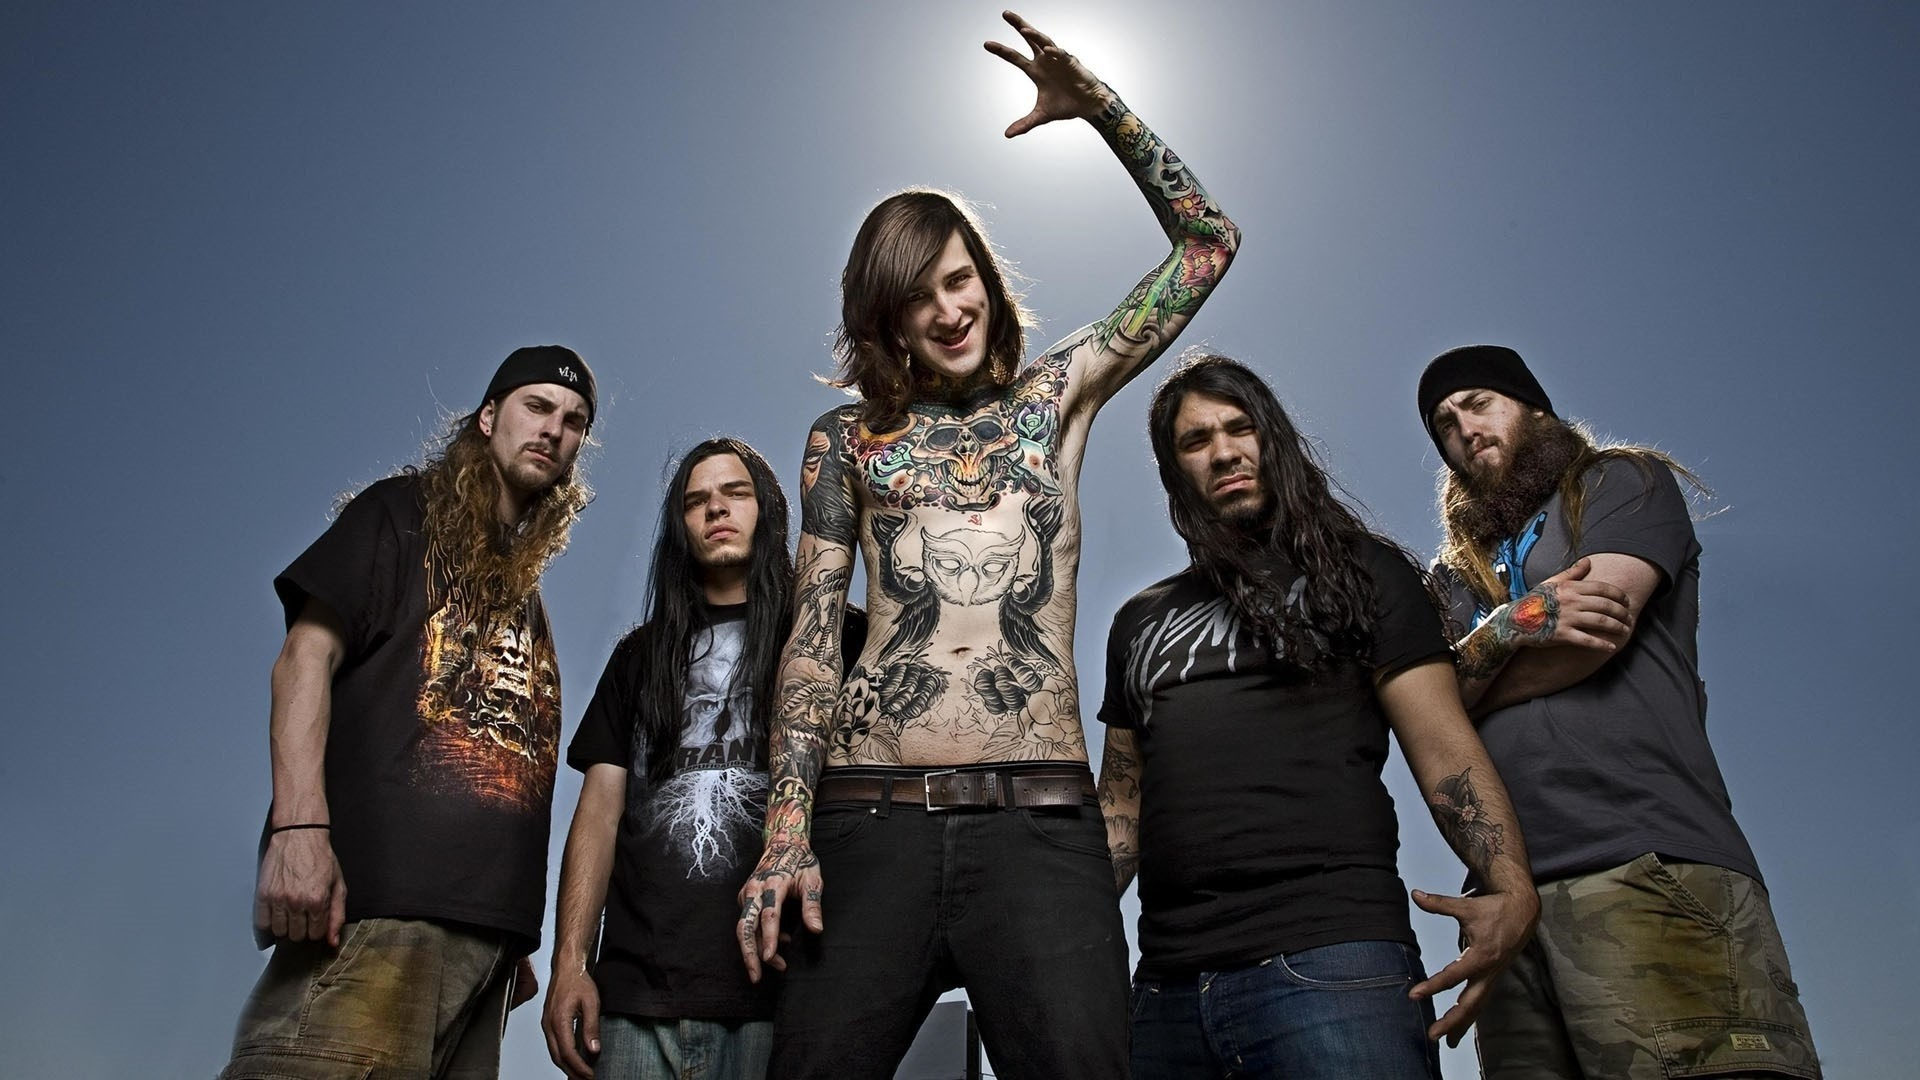 1920x1080 Suicide Silence, Mitch Lucker Wallpapers HD / Desktop and Mobile Backgrounds